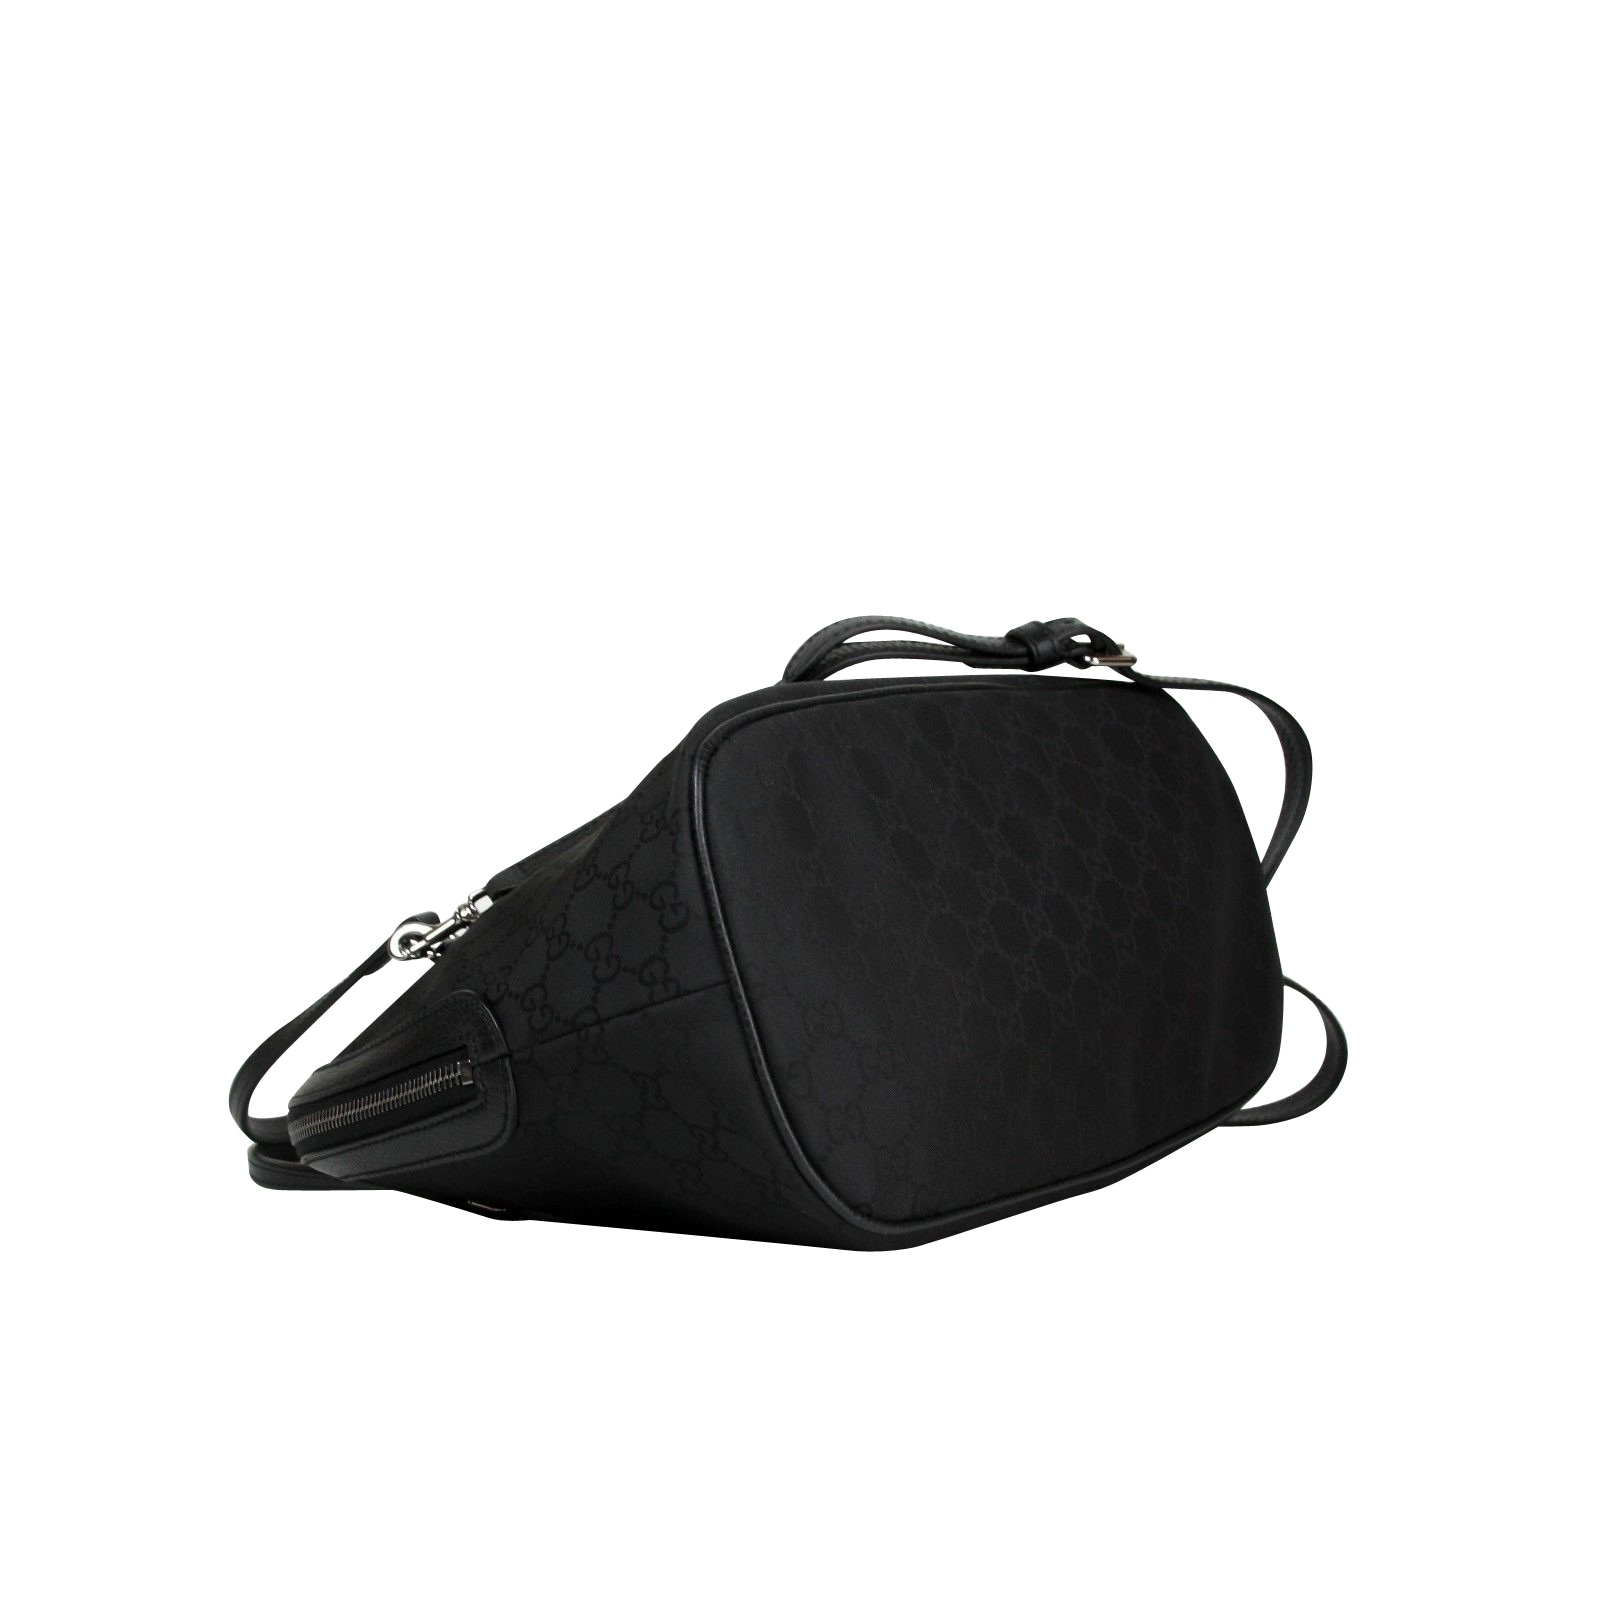 a5ddf894f Shop Gucci Dome Black Nylon Leather Guccissima with Trim Cross Body Bag  420023 1000 - One size - Free Shipping Today - Overstock - 27603229